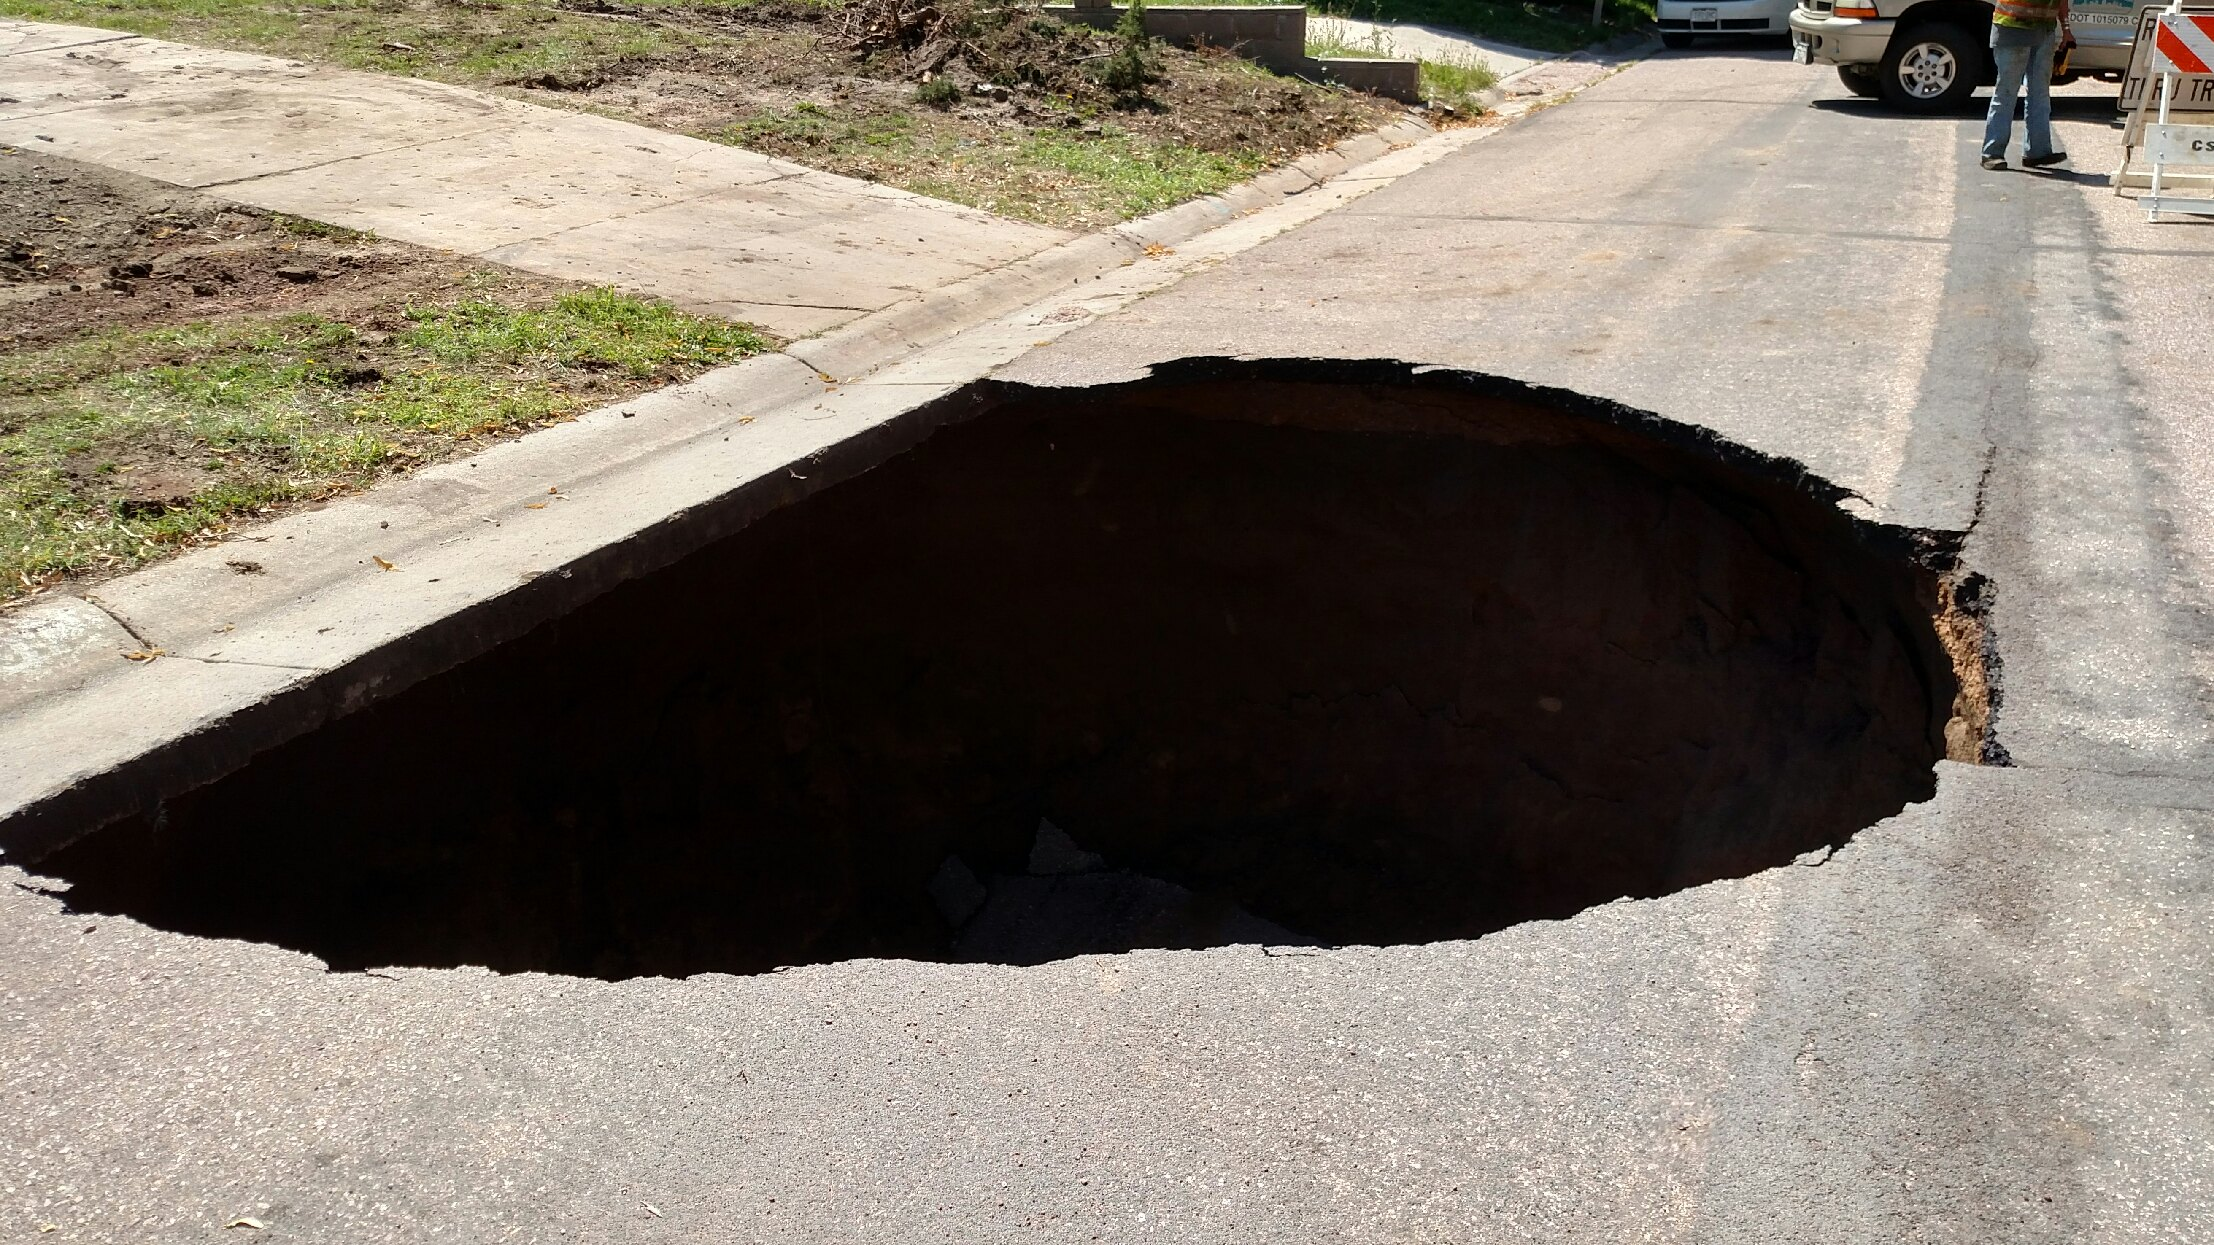 photo of large sinkhole taking up one lane of a street